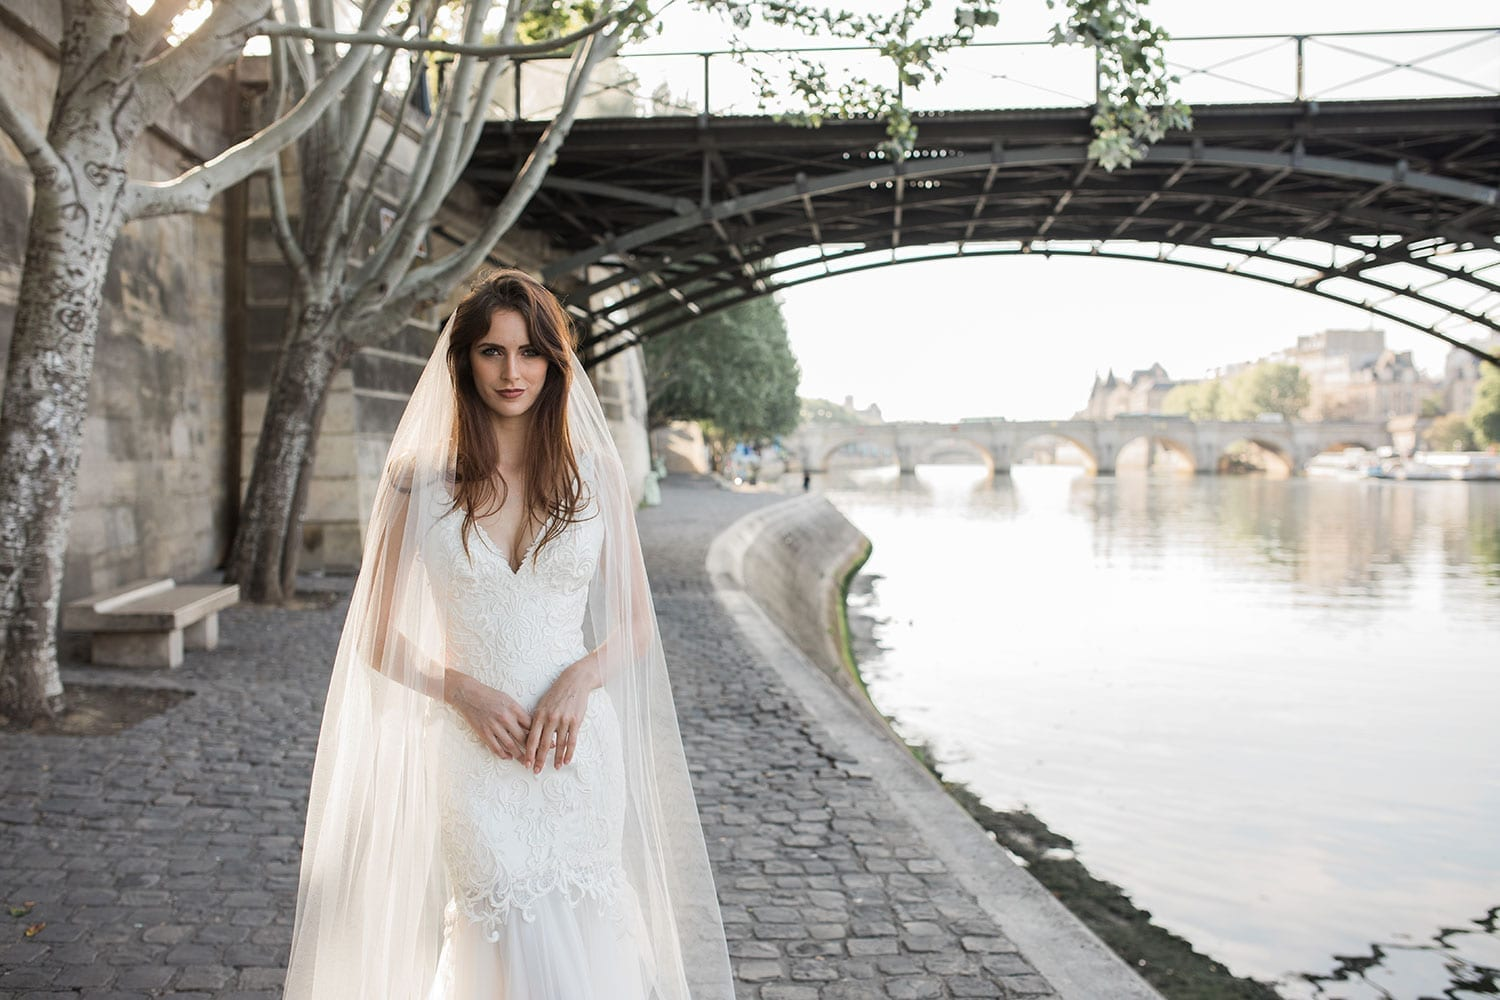 Model wearing Vinka Design Joanna Wedding Dress, a gorgeous wedding dress made with six different laces to create the beautiful bodice detail. The gown is a slim fit with a deep V neck and silk and tulle skirt. Worn in Paris with river and bridge in background.